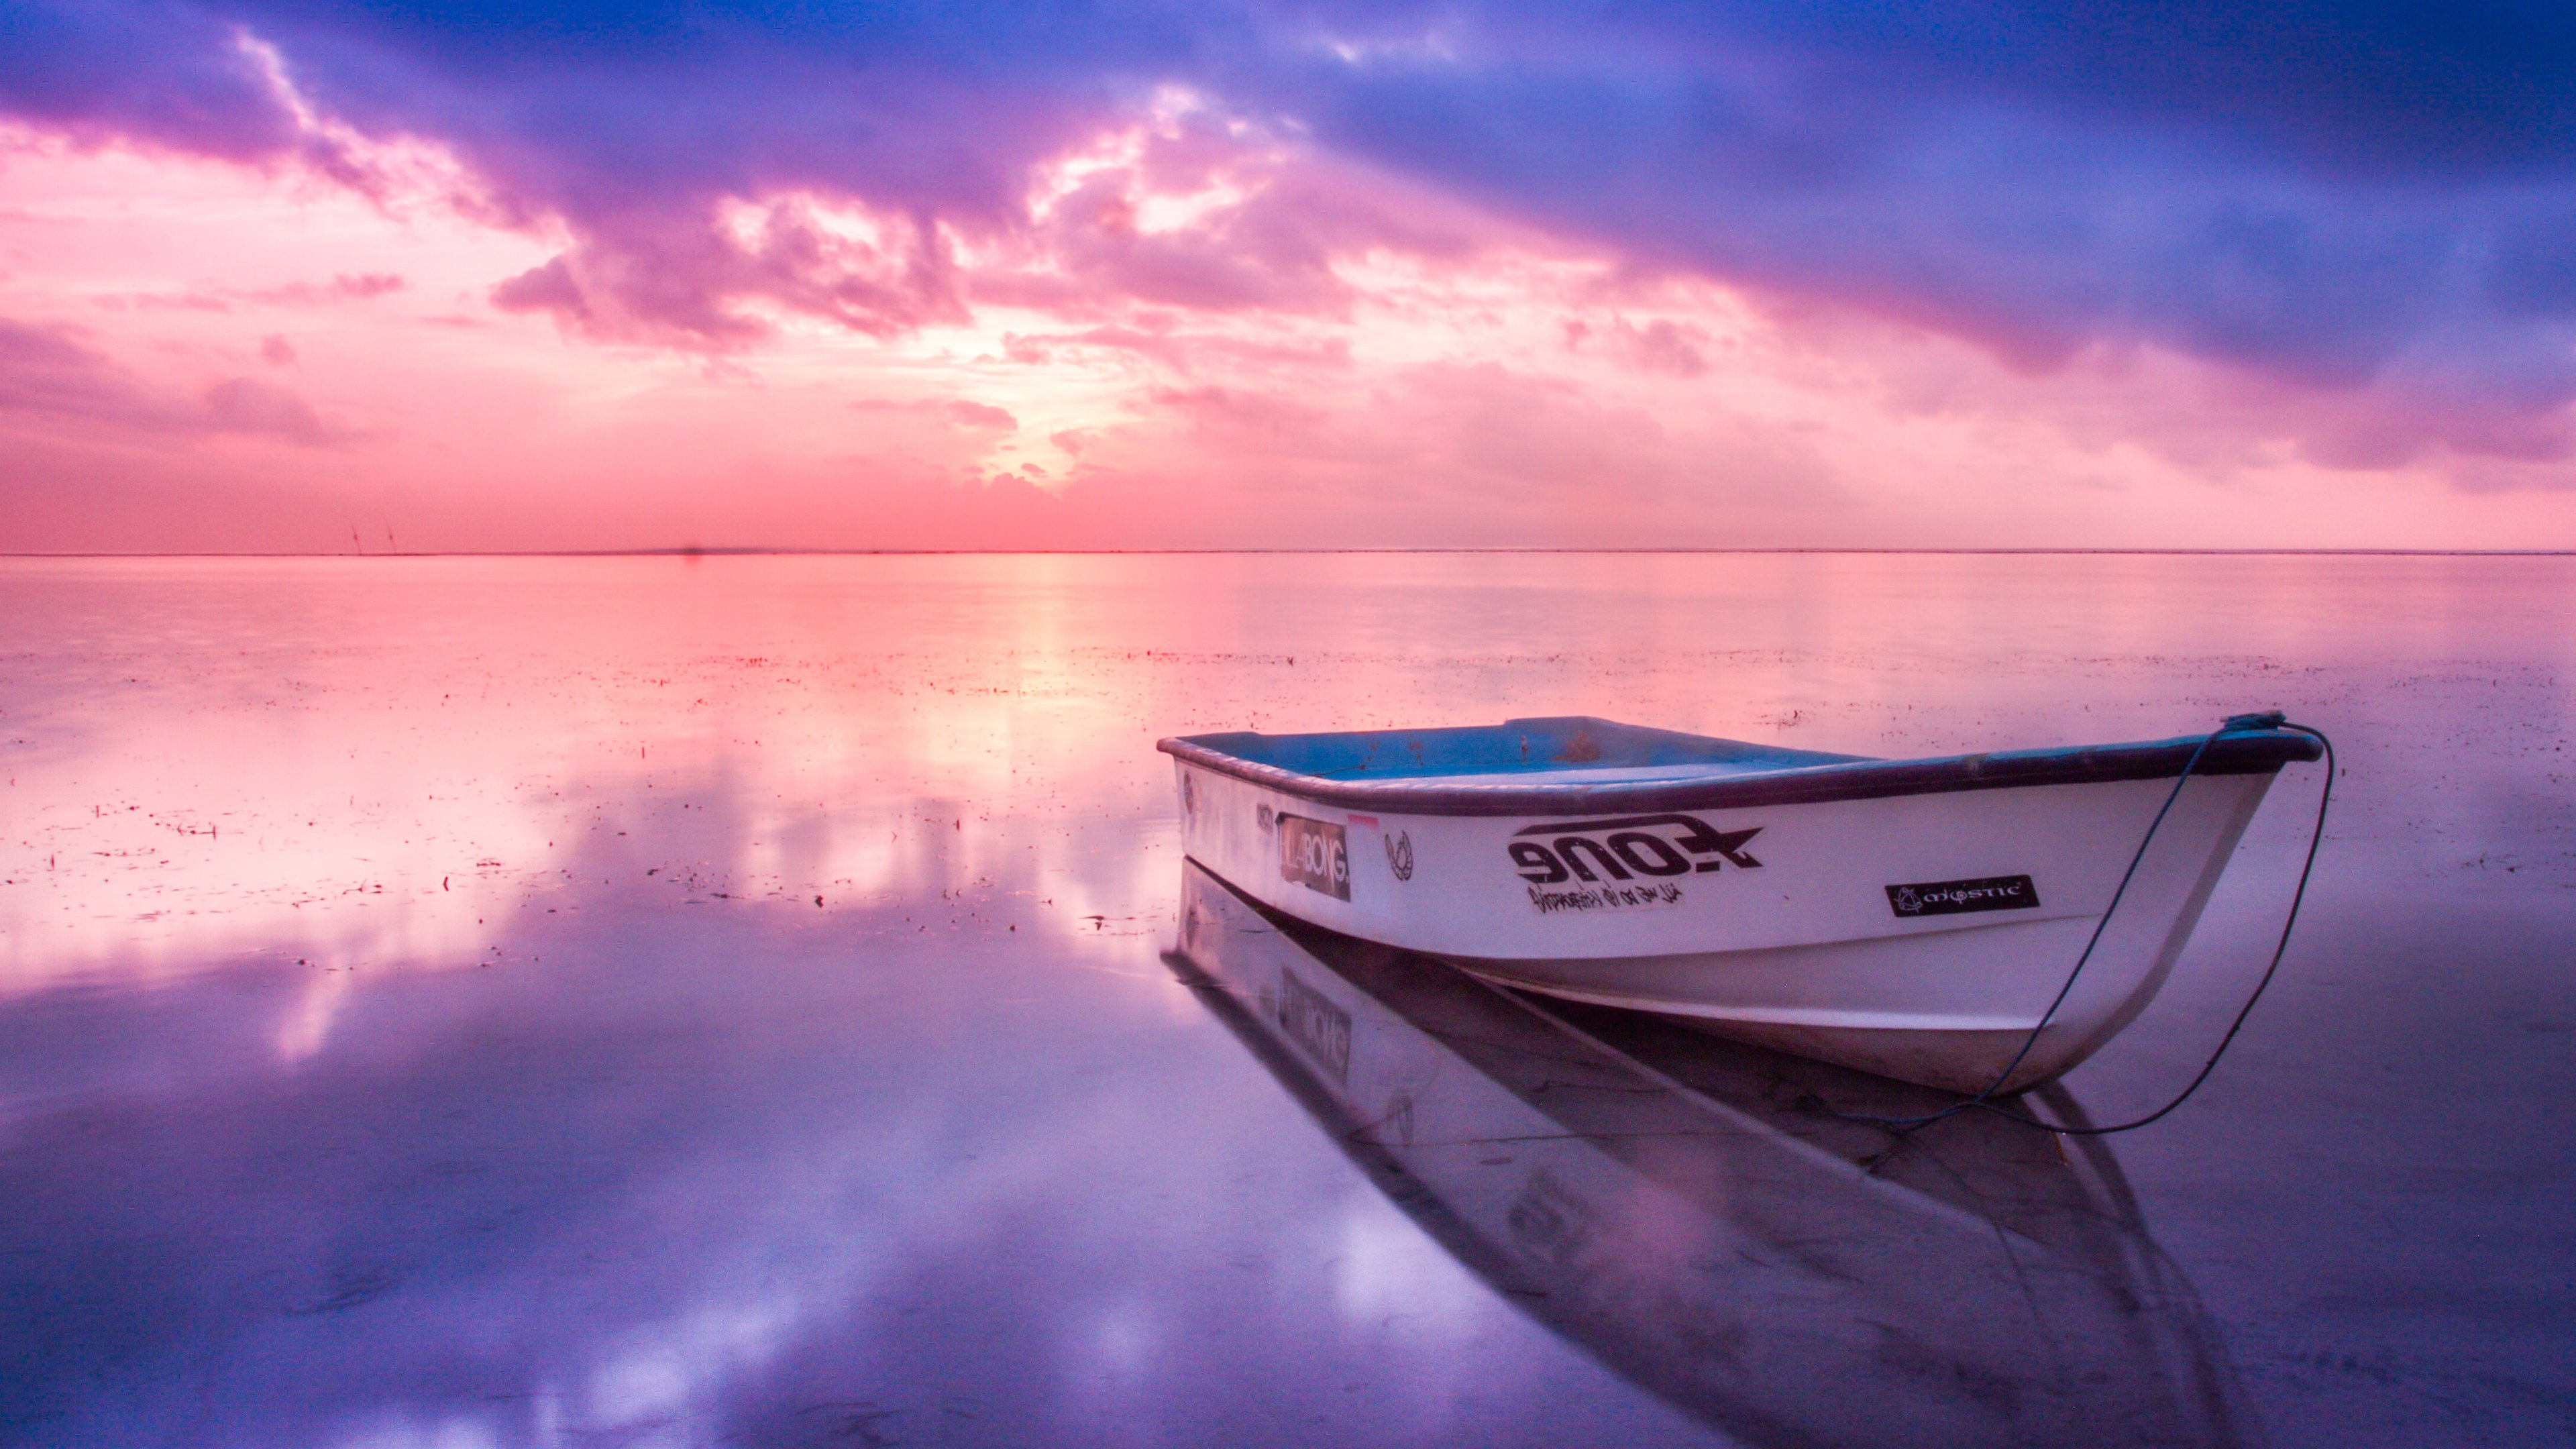 Boat Sunrise wallpapers 54 Wallpapers HD Wallpapers 3840x2160